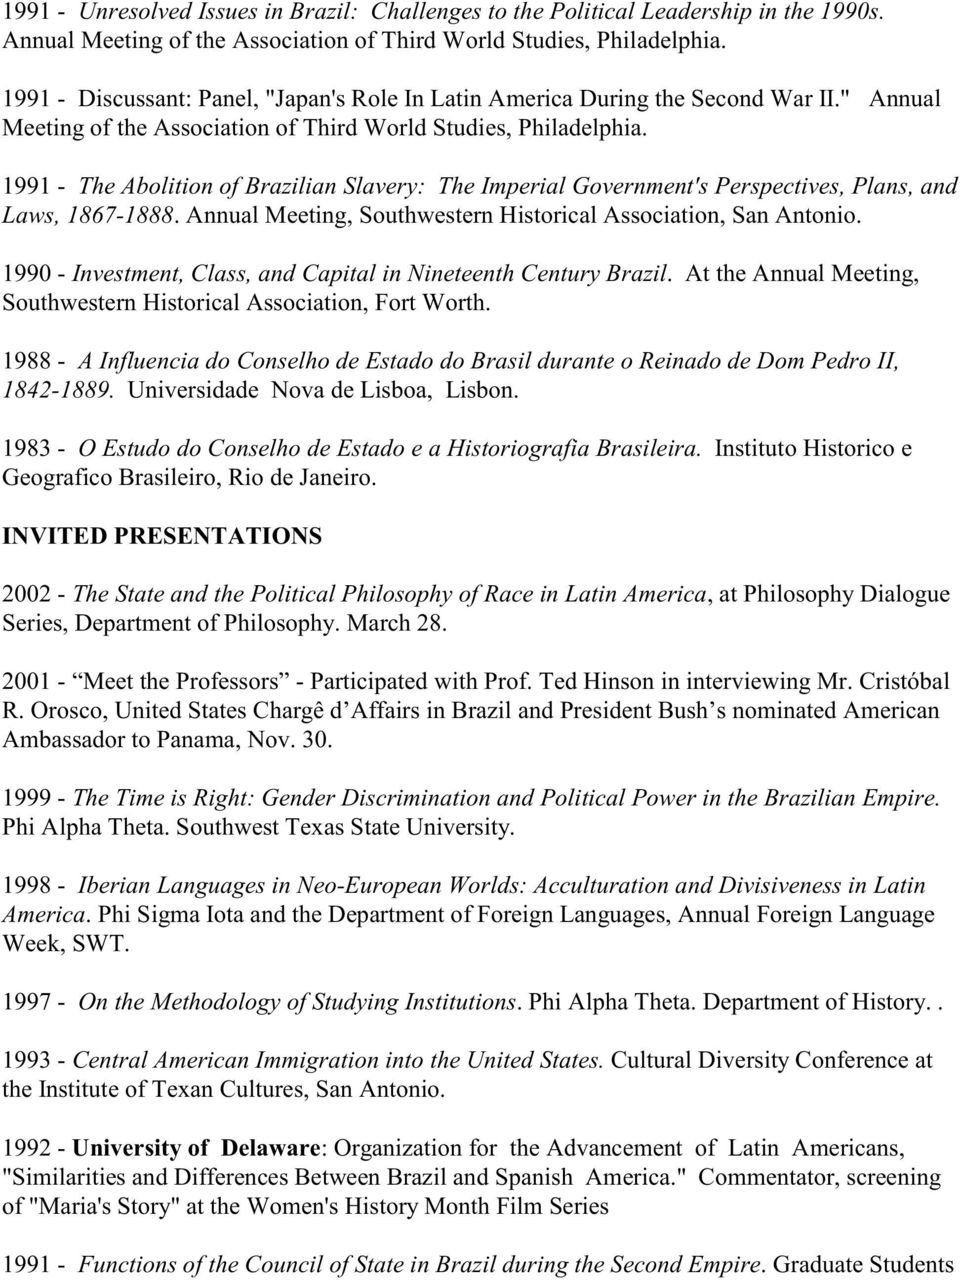 1991 - The Abolition of Brazilian Slavery: The Imperial Government's Perspectives, Plans, and Laws, 1867-1888. Annual Meeting, Southwestern Historical Association, San Antonio.